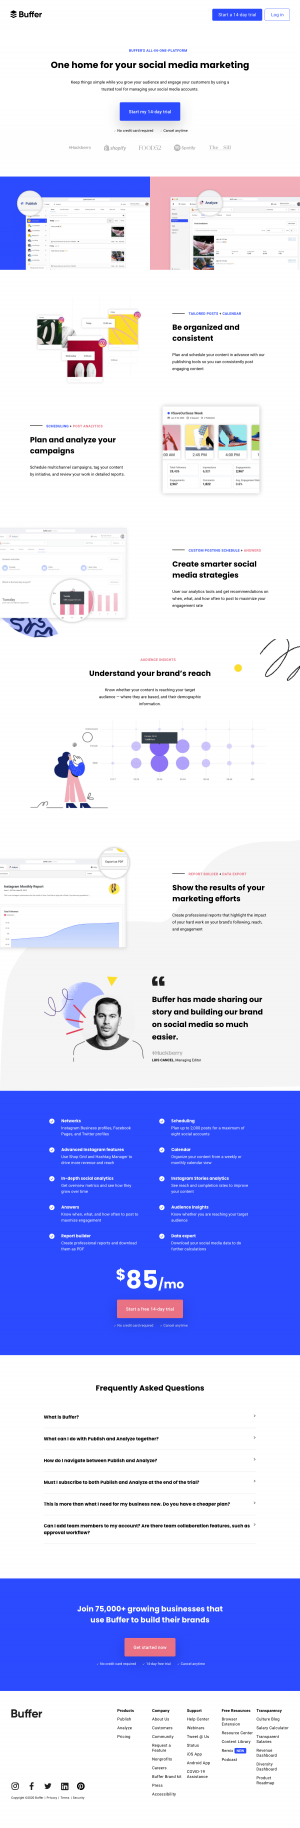 Buffer – Sign up page